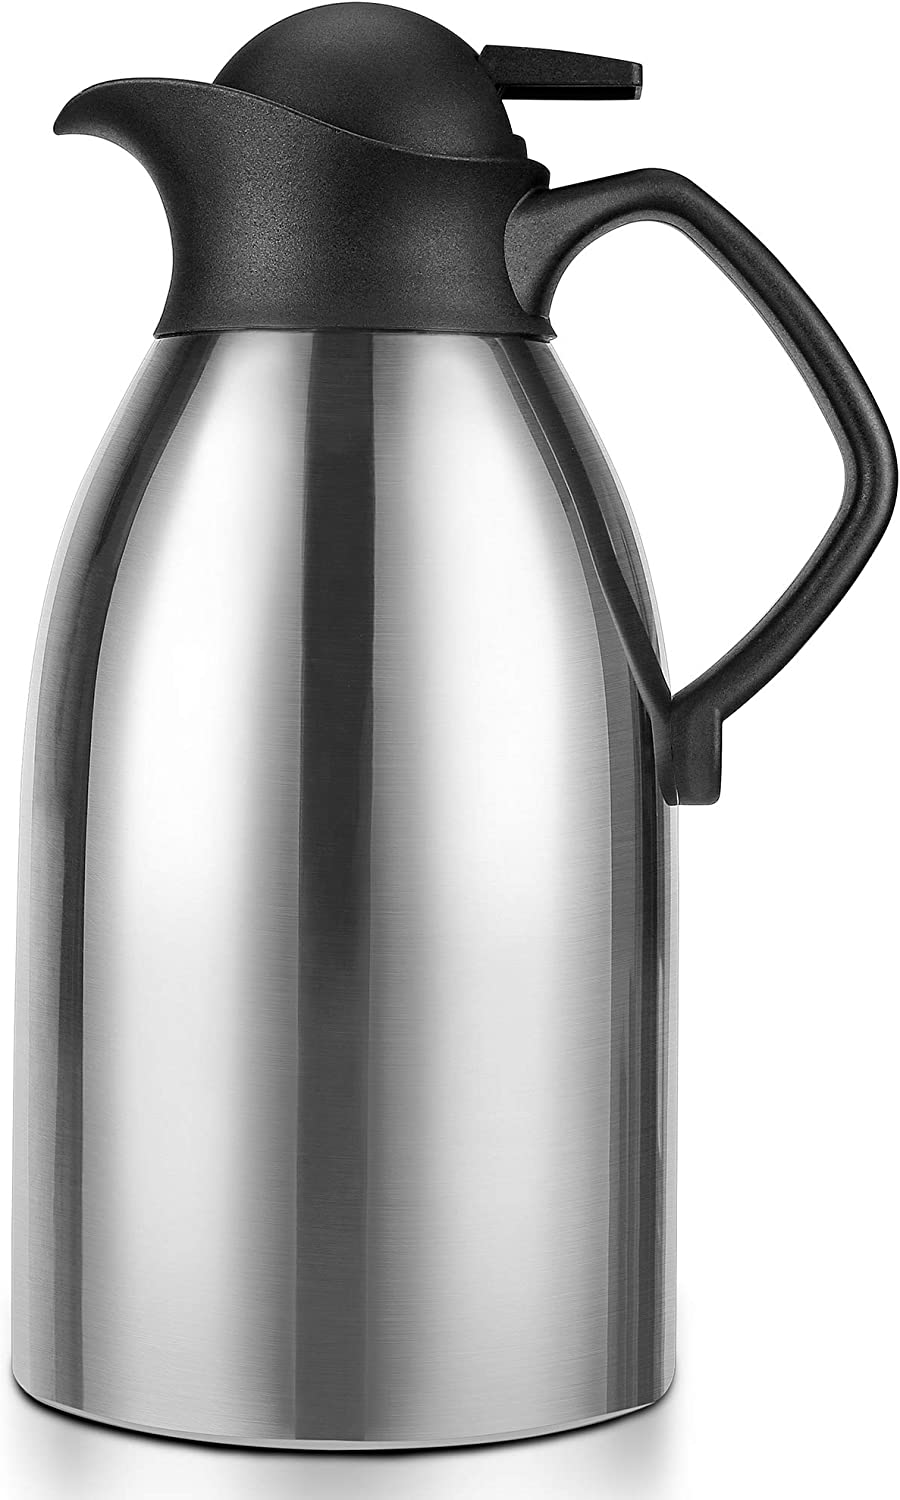 Thermal Carafe Max 78% OFF ENLOY Stainless Steel Th Coffee Insulated Dedication